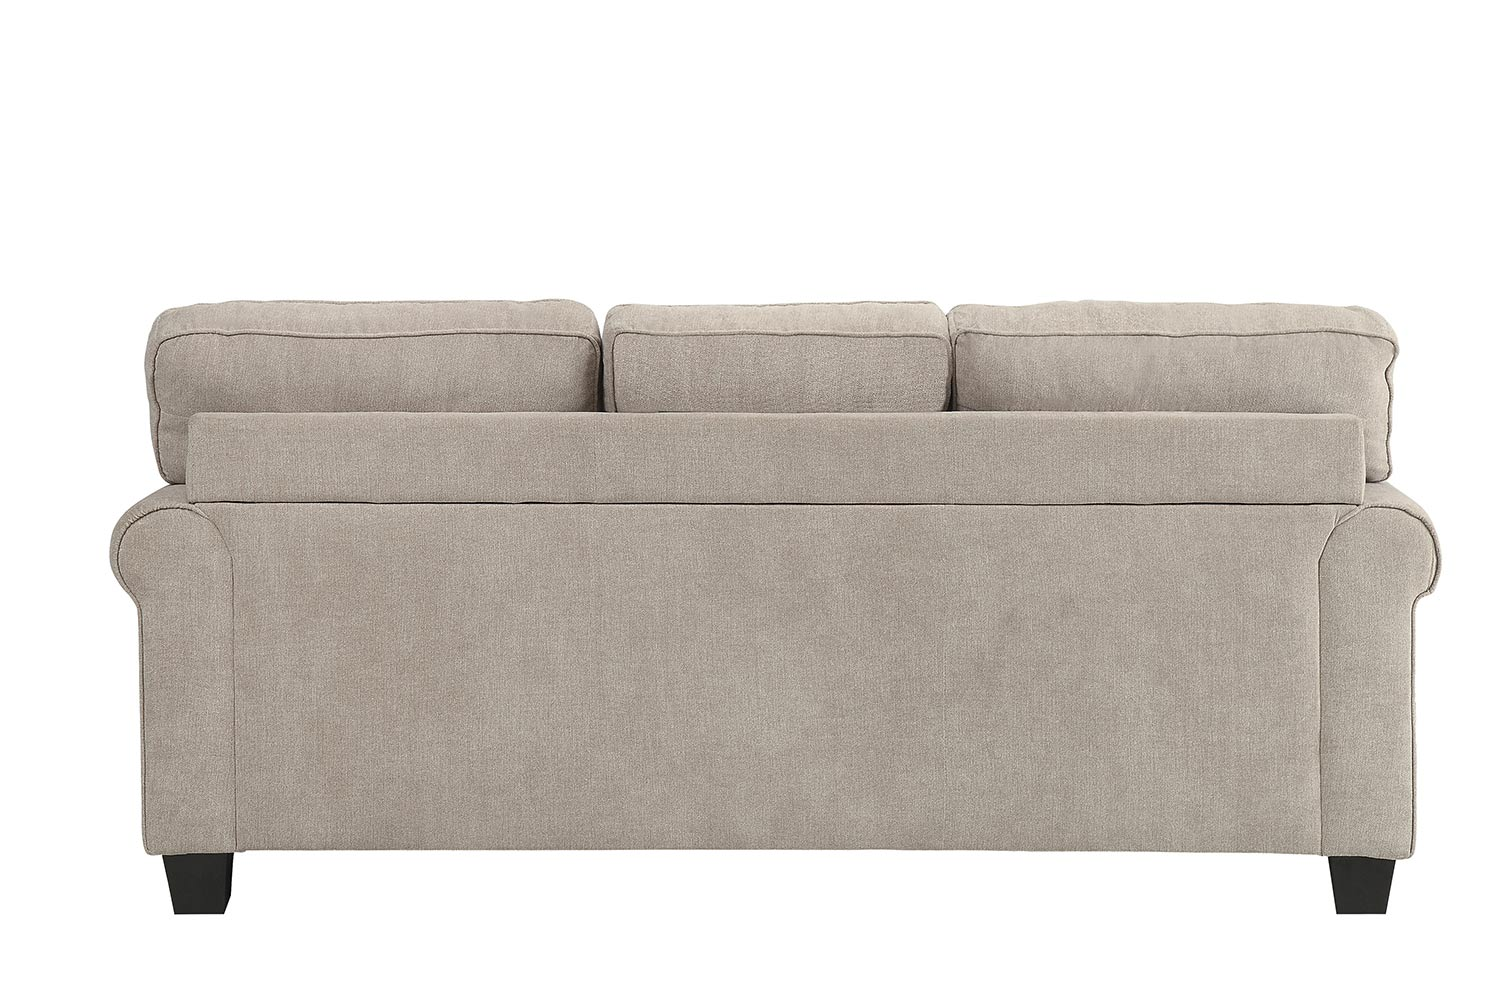 Homelegance Clumber Reversible Sofa Chaise Sectional - Sand